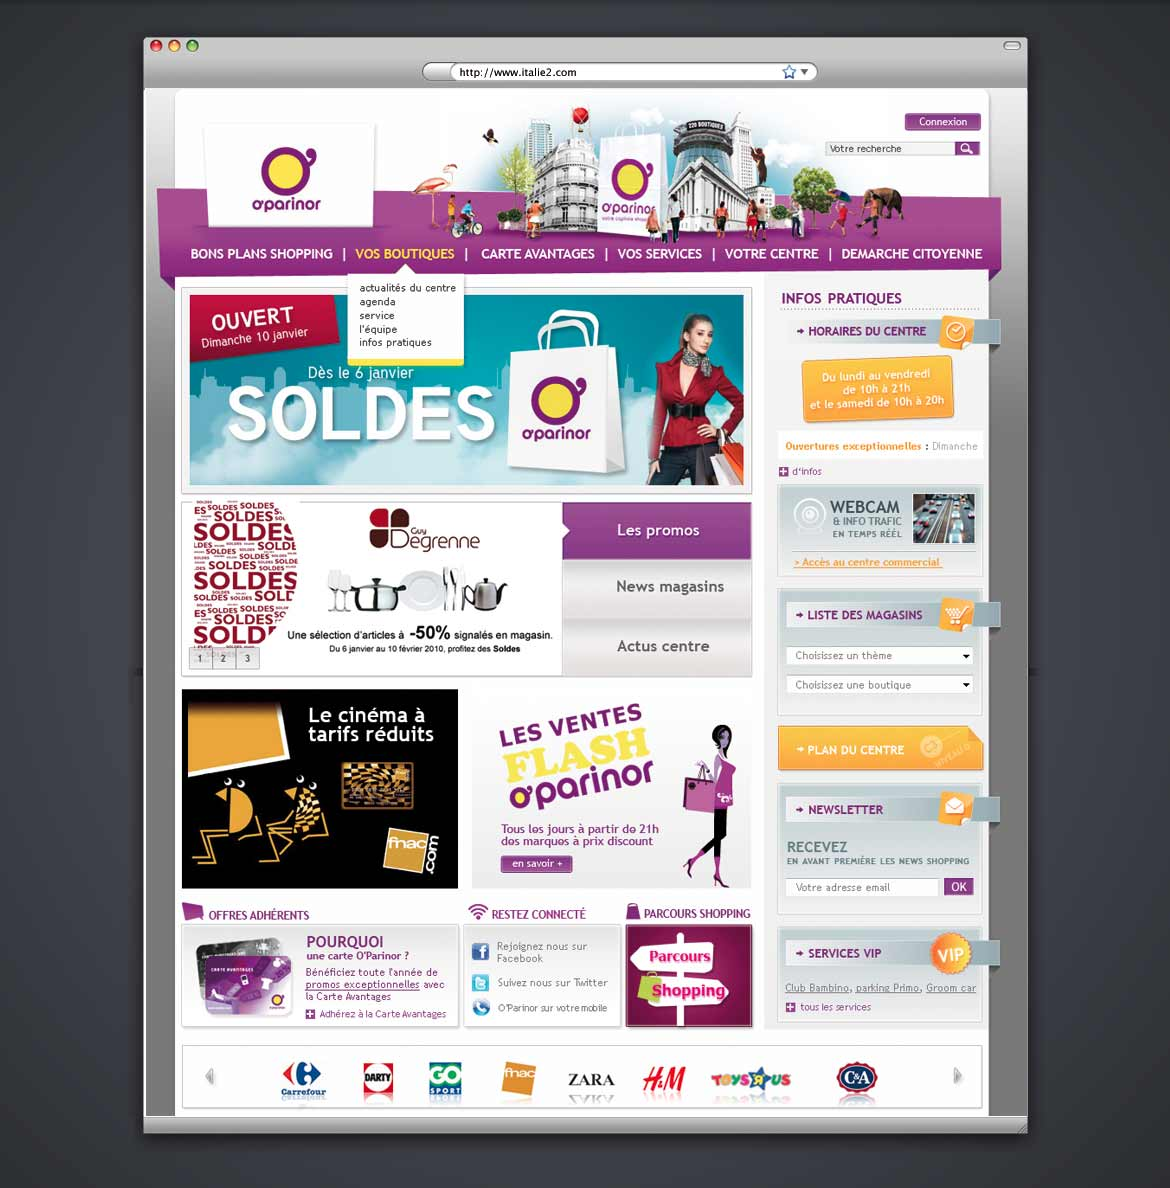 Design du site web du centre commercial O'Parisnor